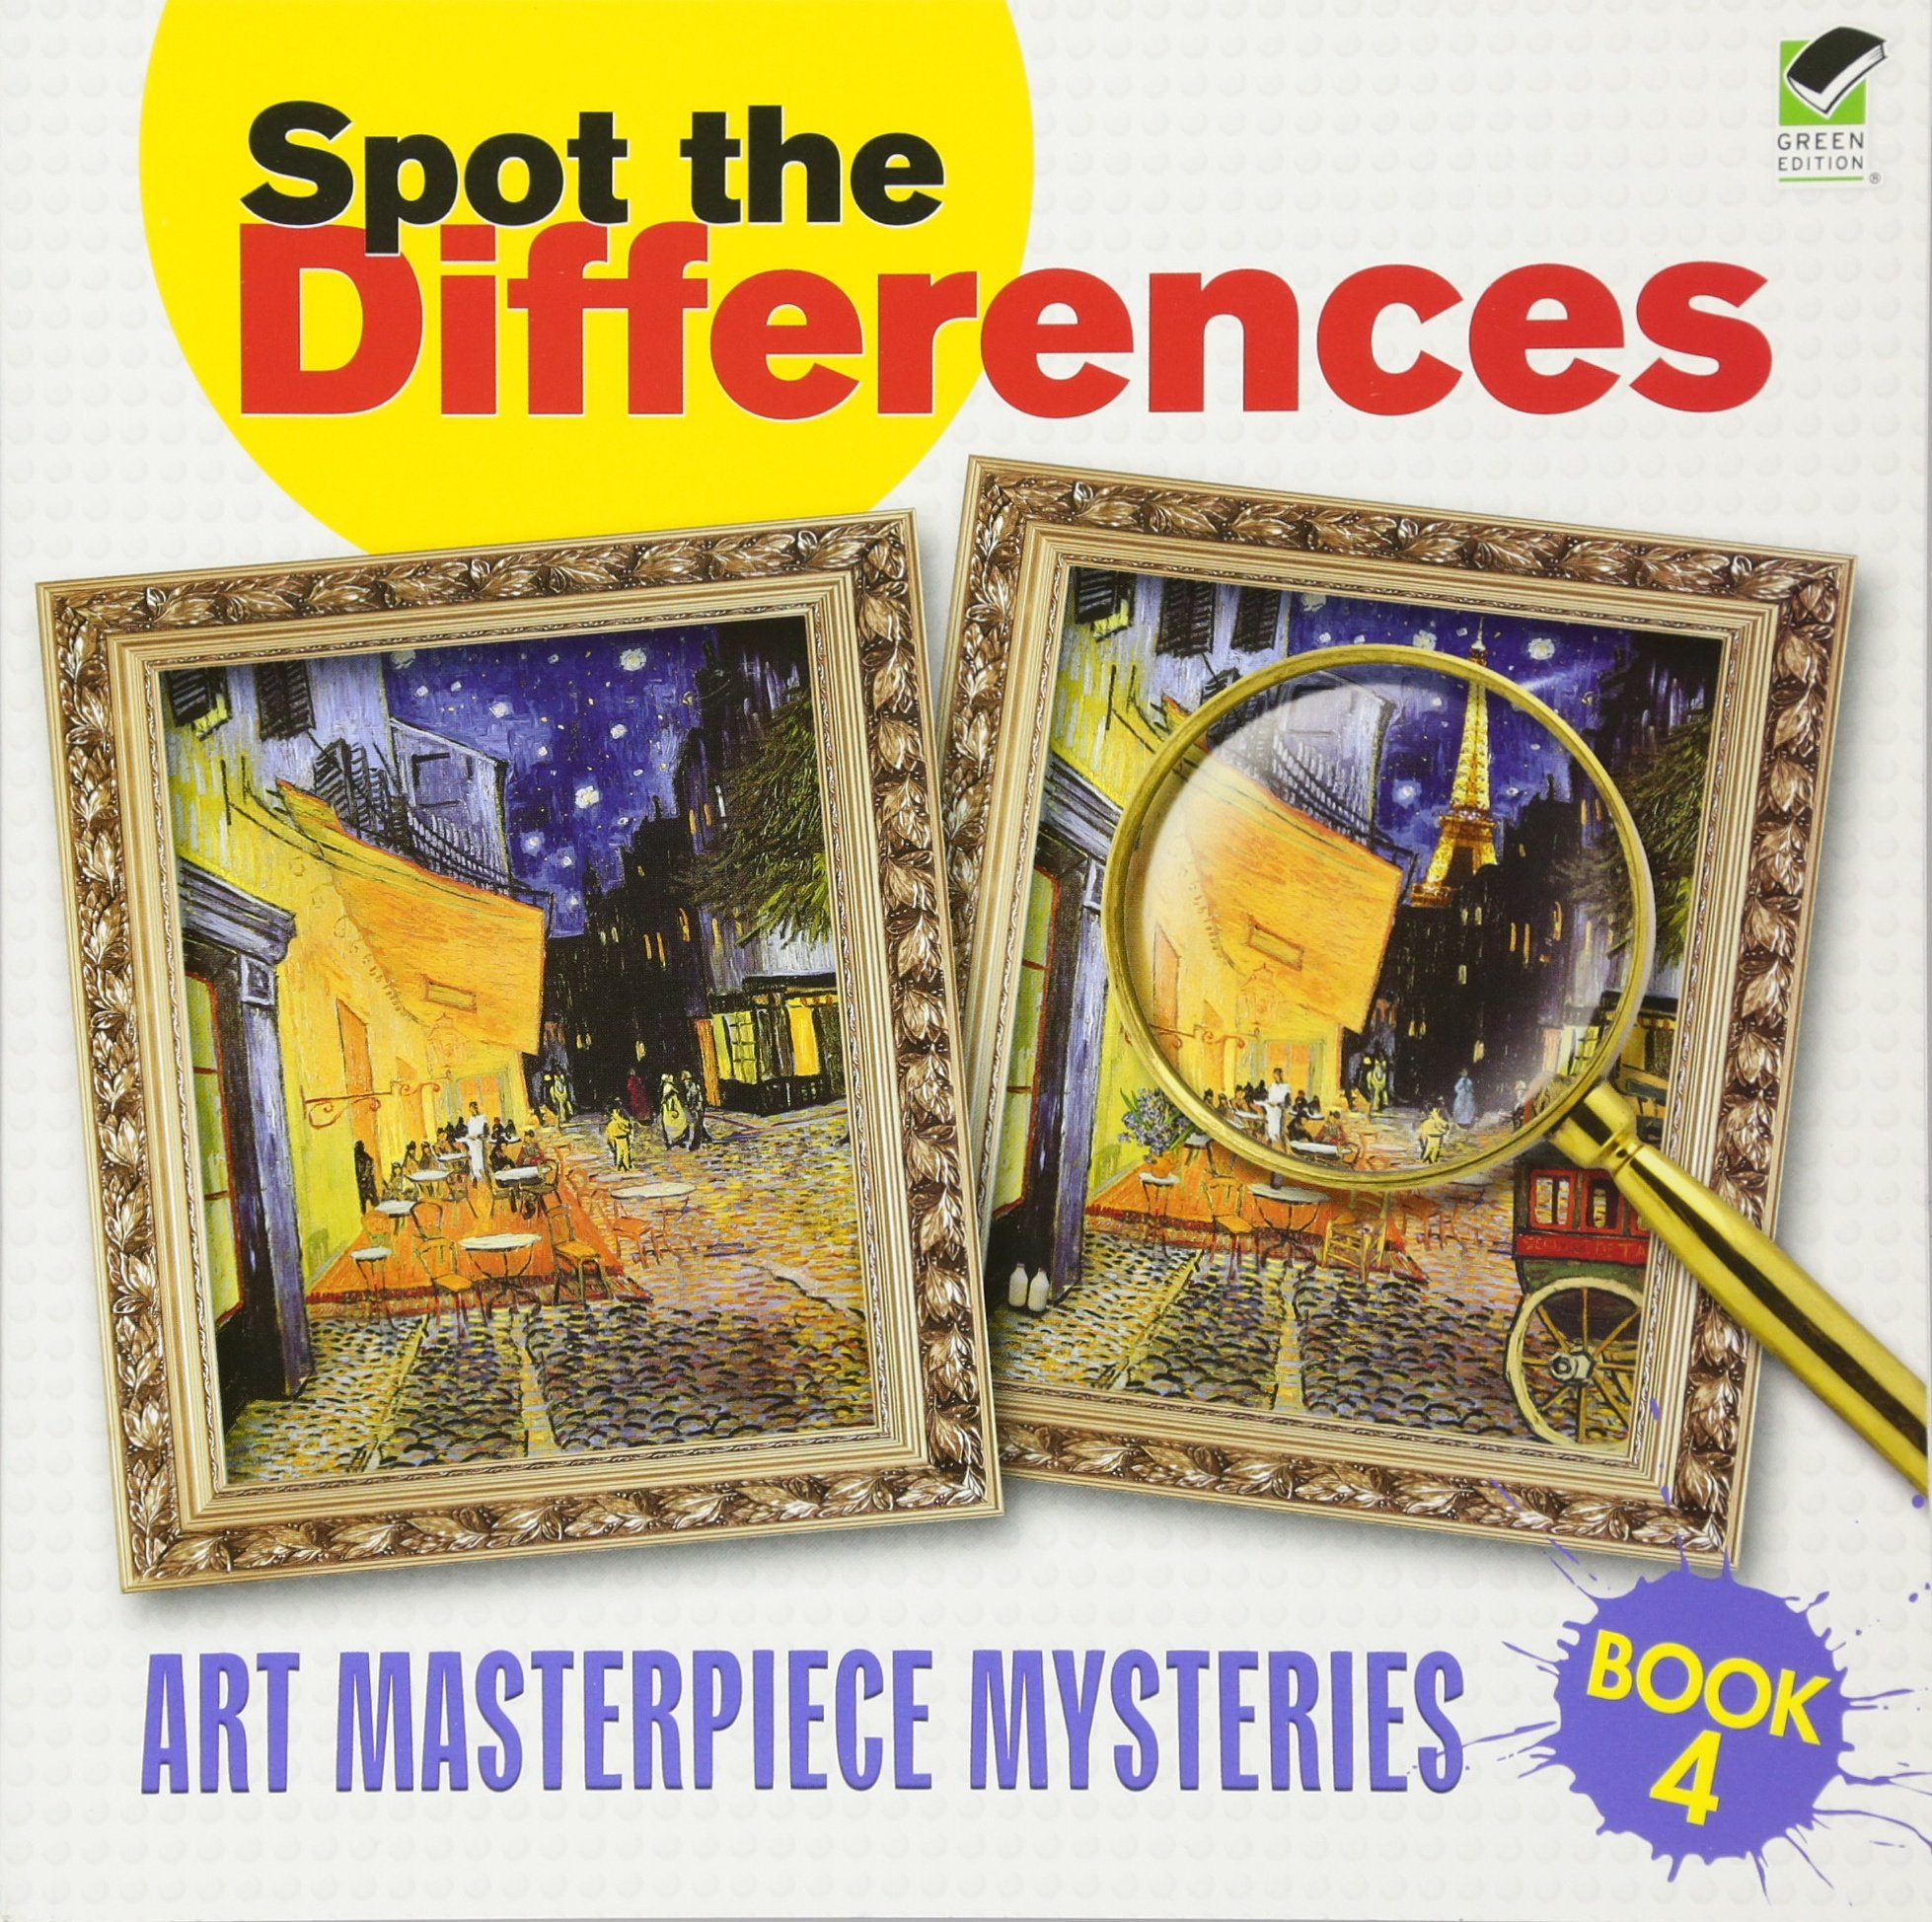 Spot the Differences Book 4: Art Masterpiece Mysteries (Dover Children's Activity Books)